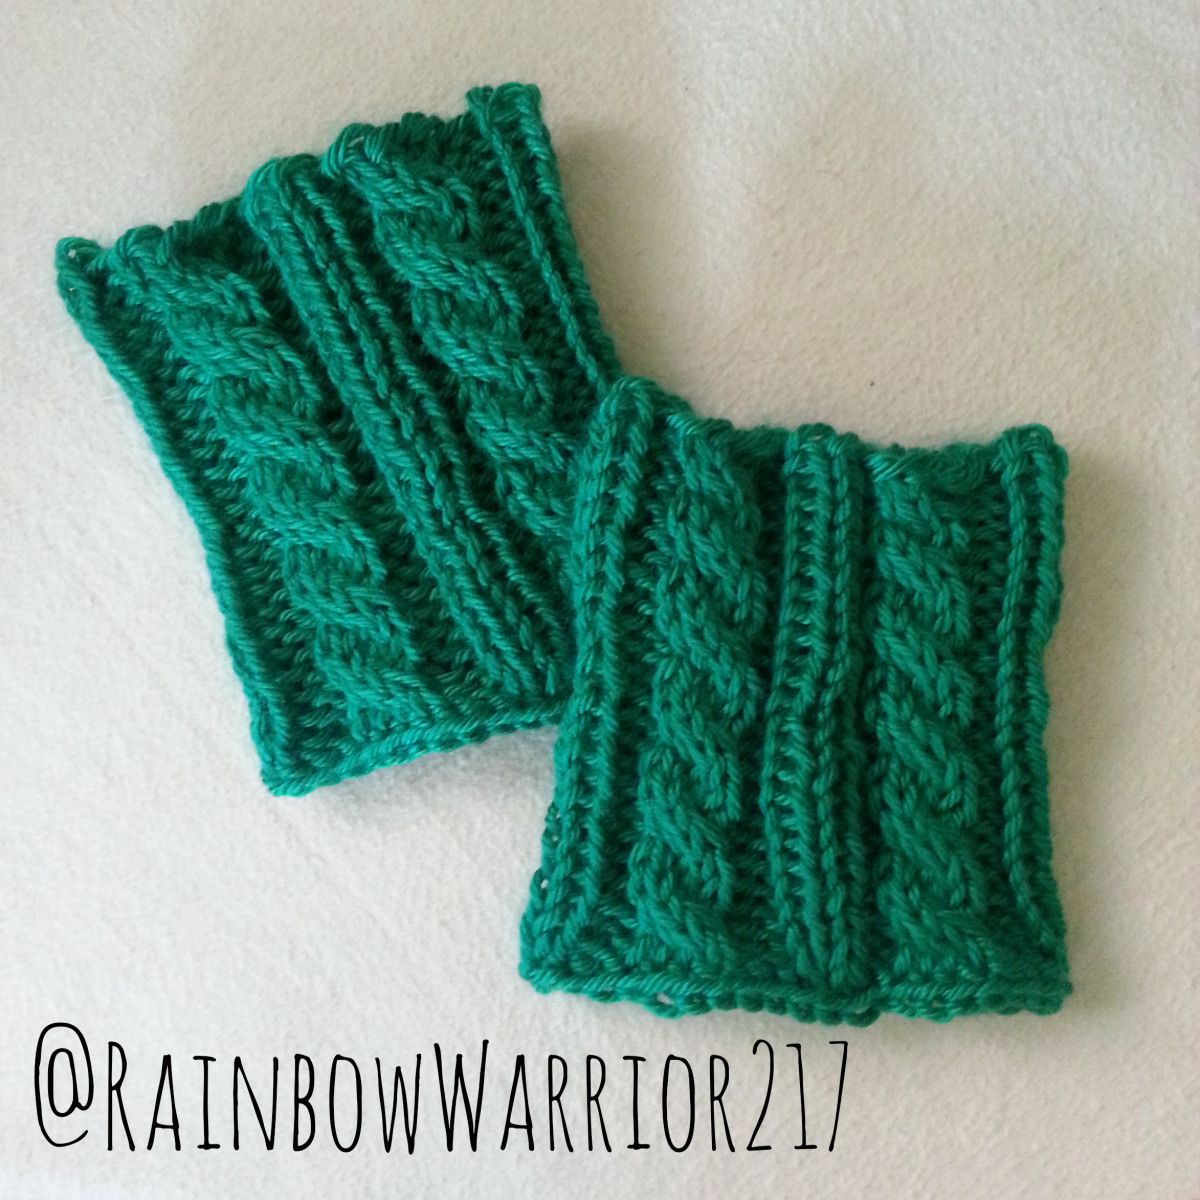 Twisted/Cable Boot Cuffs | Cable, Create and Knit patterns